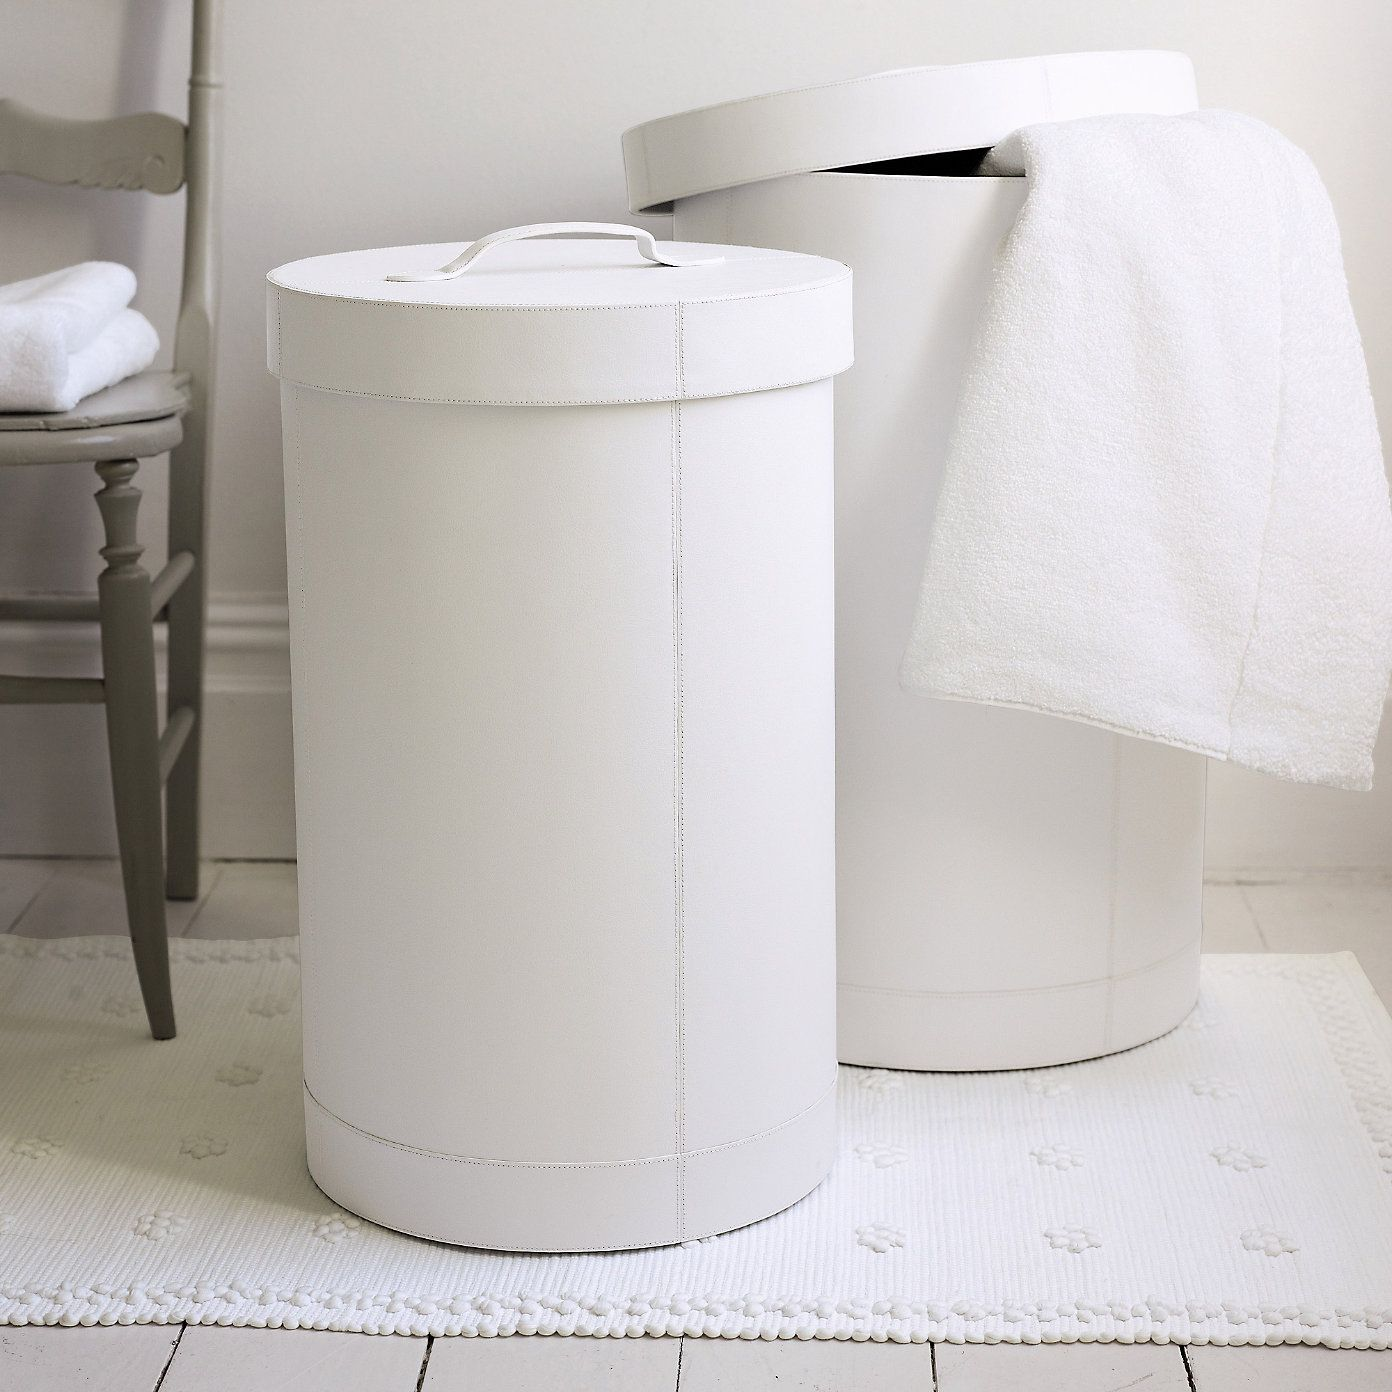 White Leather Laundry Bins - Bathroom Accessories | The White ...